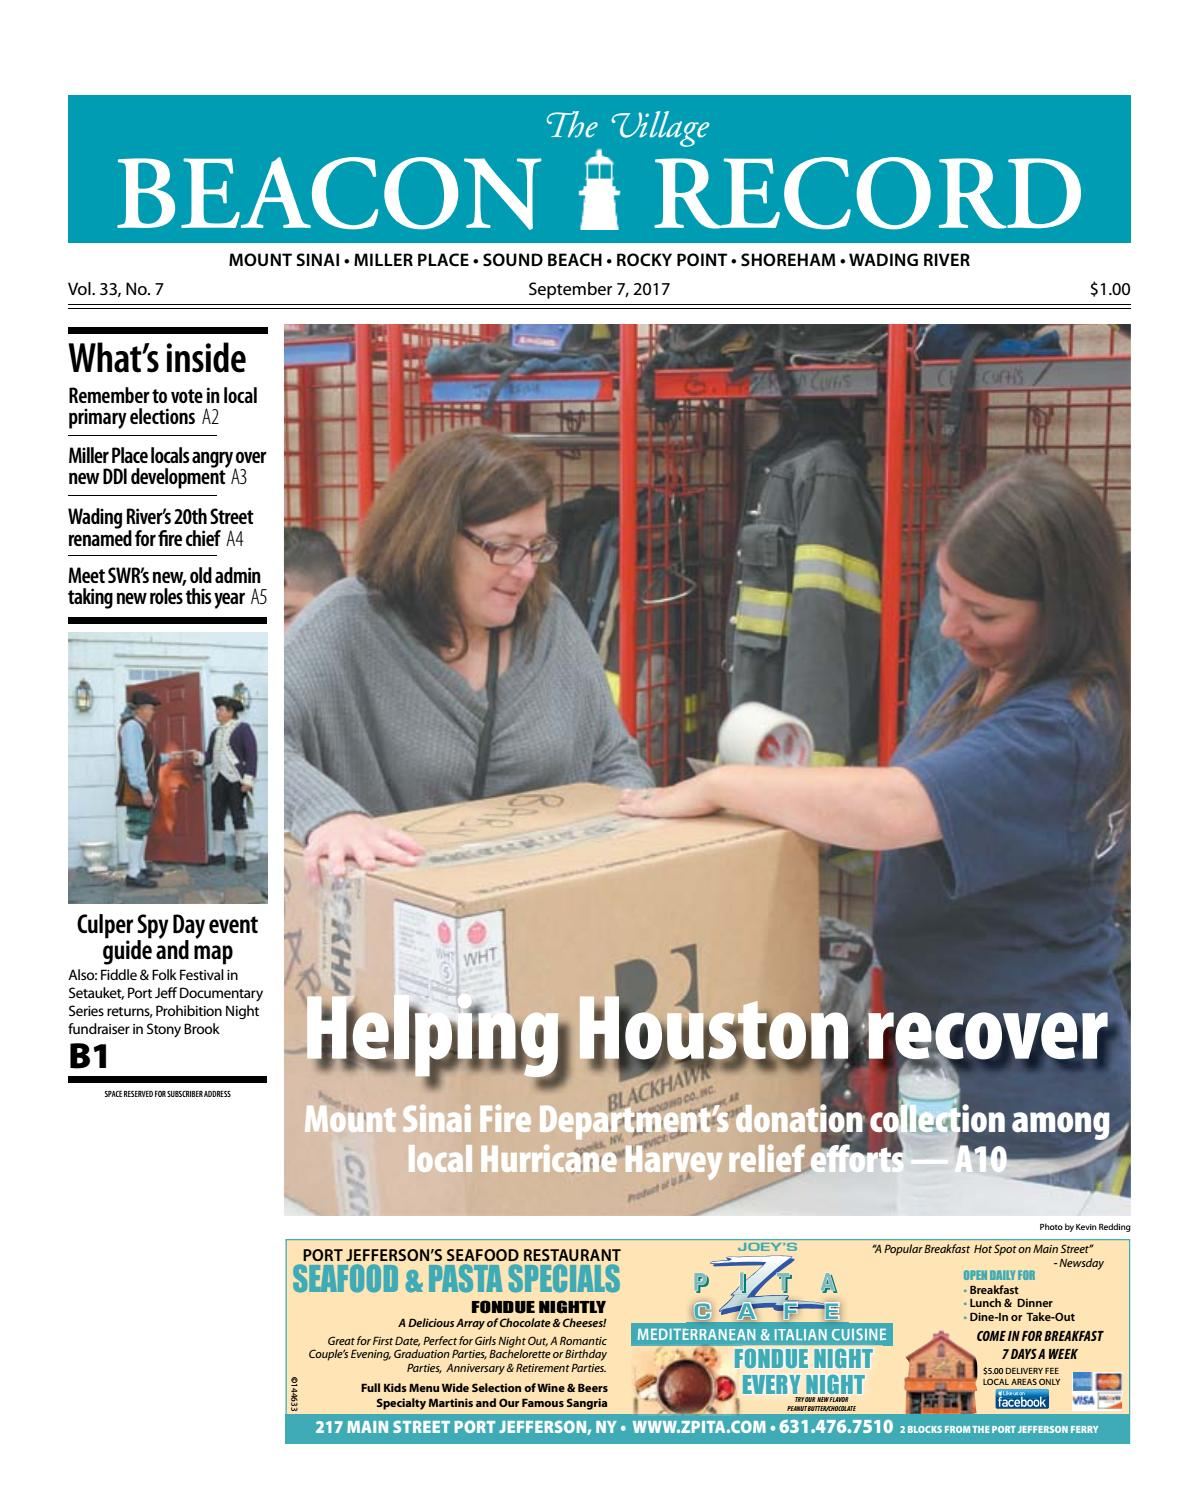 The Village Beacon Record - September 7, 2017 by TBR News Media - issuu